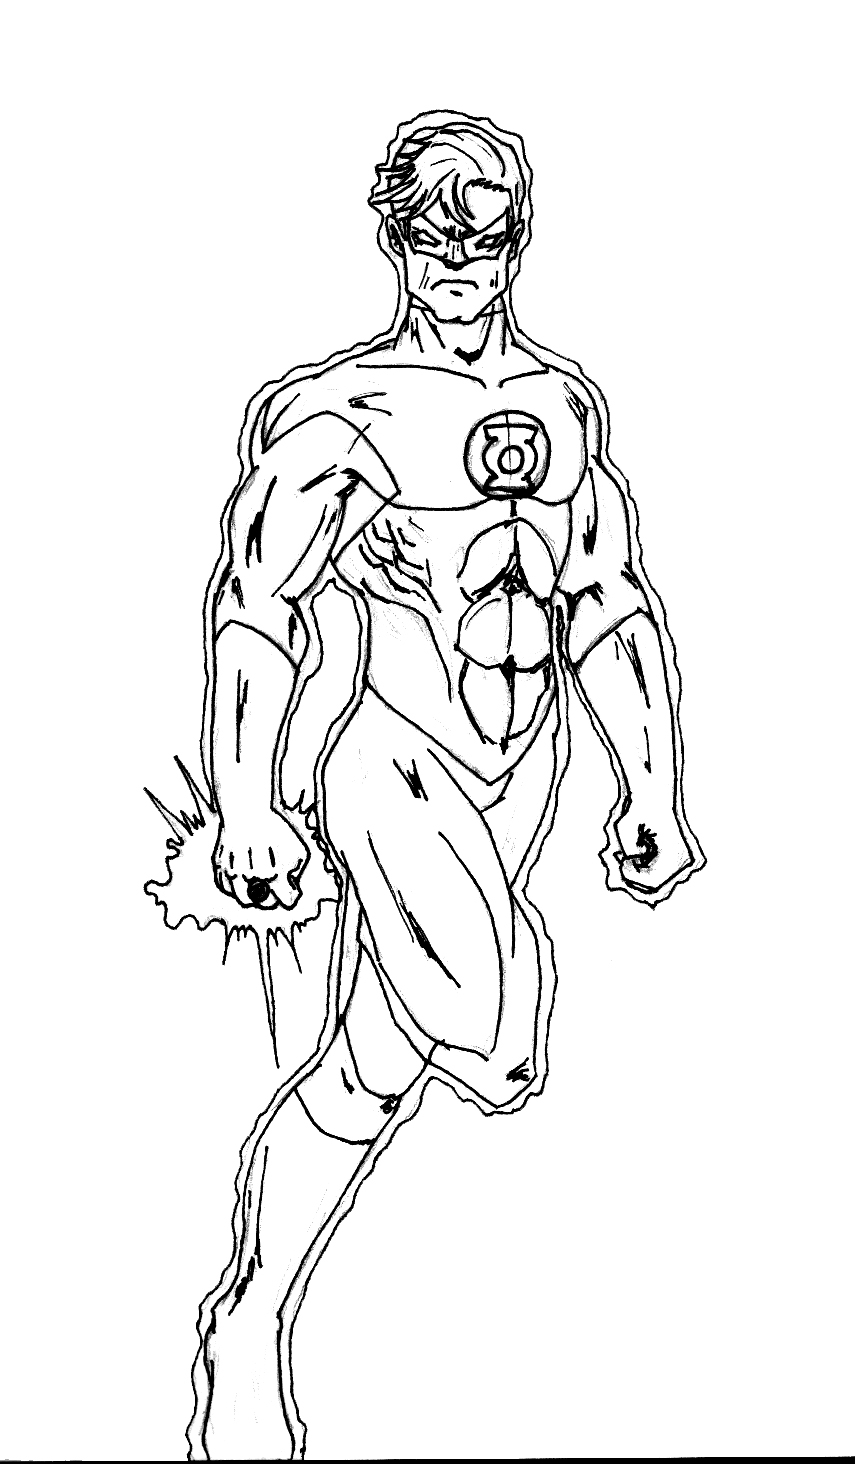 Green lantern symbol coloring pages coloring pages for Green lantern printable coloring pages